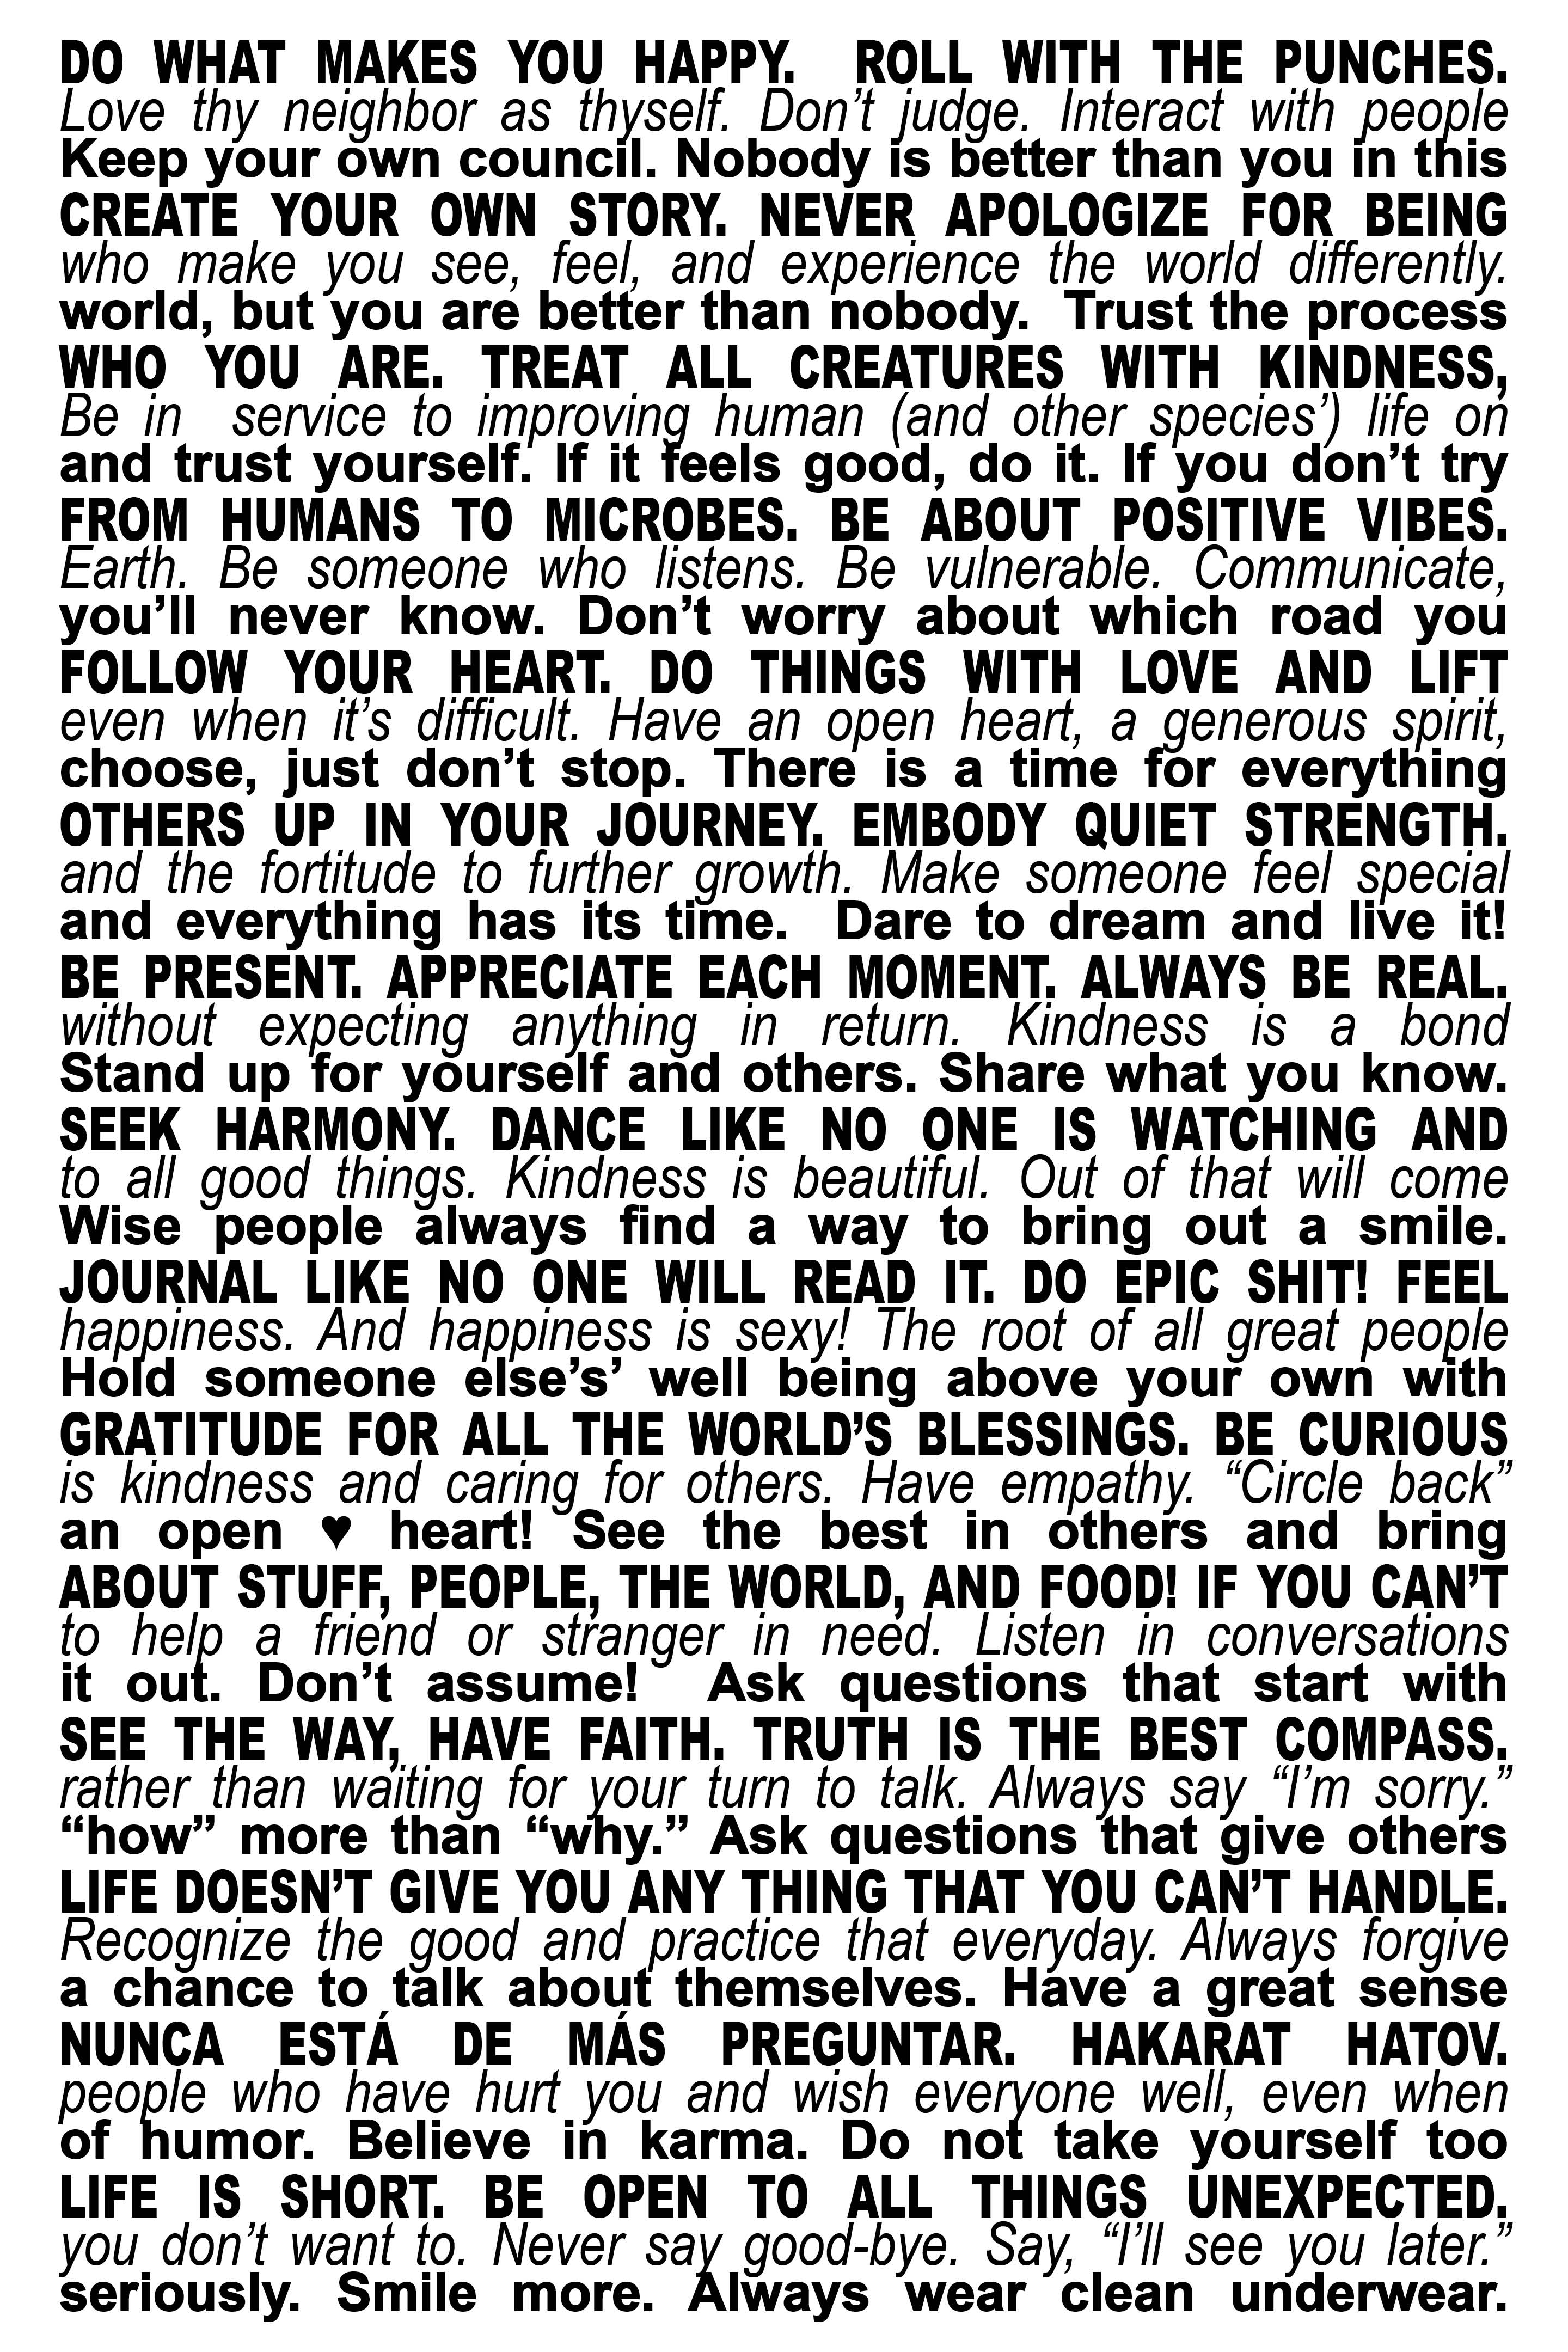 """DO WHAT MAKES YOU HAPPY.  ROLL WITH THE PUNCHES. CREATE YOUR OWN STORY. NEVER APOLOGIZE FOR BEING WHO YOU ARE. TREAT ALL CREATURES WITH KINDNESS, FROM HUMANS TO MICROBES. BE ABOUT POSITIVE VIBES. FOLLOW YOUR HEART. DO THINGS WITH LOVE AND LIFT OTHERS UP IN YOUR JOURNEY. EMBODY QUIET STRENGTH. BE PRESENT AND APPRECIATE EACH MOMENT. ALWAYS BE REAL. SEEK HARMONY. DANCE LIKE NO ONE IS WATCHING AND JOURNAL LIKE NO ONE WILL READ IT. DO EPIC SHIT! FEEL GRATITUDE FOR ALL THE WORLD'S BLESSINGS. BE CURIOUS ABOUT STUFF, PEOPLE, THE WORLD, AND FOOD! IF YOU CAN'T SEE THE WAY, HAVE FAITH. TRUTH IS THE BEST COMPASS. LIFE DOESN'T GIVE YOU ANYTHING THAT YOU CAN'T HANDLE. NUNCA ESTÁ DE MÁS PREGUNTAR. HAKARAT HATOV. LIFE IS SHORT. BE OPEN TO ALL THINGS UNEXPECTED.    Love thy neighbor as thyself. Don't judge. Interact with people who make you see, feel, and experience the world differently. Be in service to improving human (and other species') life on Earth. Be someone who listens. Be vulnerable. Communicate, even when it's difficult, Have an open heart, a generous spirit, and the fortitude to further growth. Make someone feel special without expecting anything in return. Kindness is a bond to all good things. Kindness is beautiful. Out of that will come happiness. And happiness is sexy! The root of all great people is kindness and caring for others. Have empathy. """"Circle back"""" to help a friend or stranger in need. Listen in conversations rather than waiting for your turn to talk. Always say """"I'm sorry."""" Recognize the good and practice that everyday. Always forgive the people who have hurt you and wish everyone well, even if you don't want to. Never say good-bye. Say,""""I'll see you later.""""    Keep your own council. Nobody is better than you in this world, but you are better than nobody.  Trust the process and Trust yourself. If it feels good, do it. If you don't try you'll never know. Don't worry about which road you choose, just don't stop. There is a time for everything and everythin"""